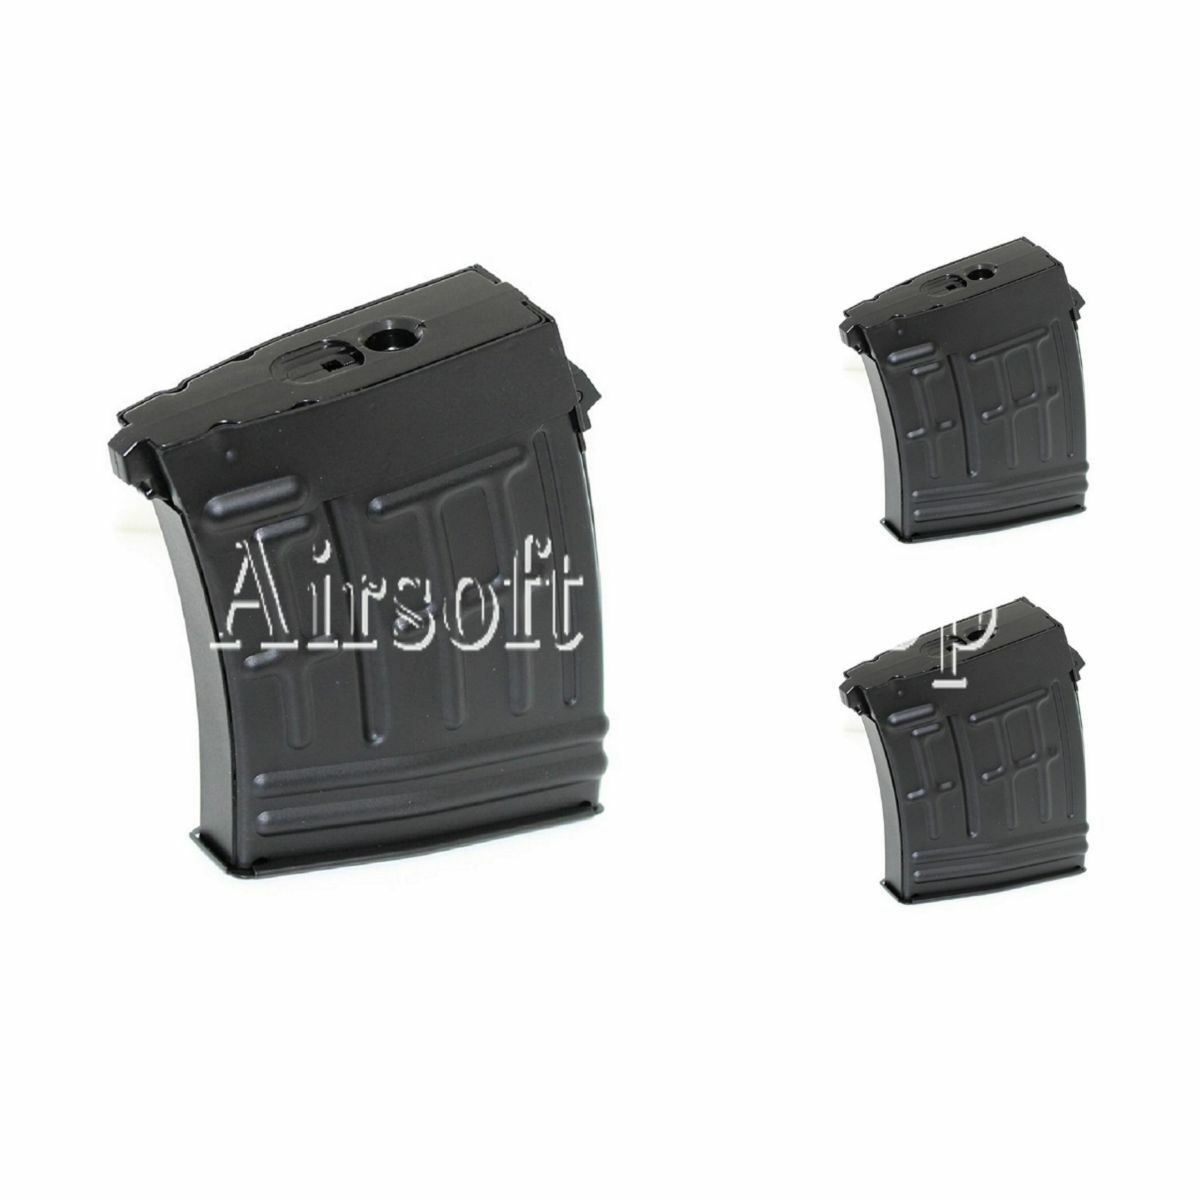 Airsoft CYMA 3pcs 80rd Metal Mag Mid-Cap Magazine For RS CYMA SVD Sniper